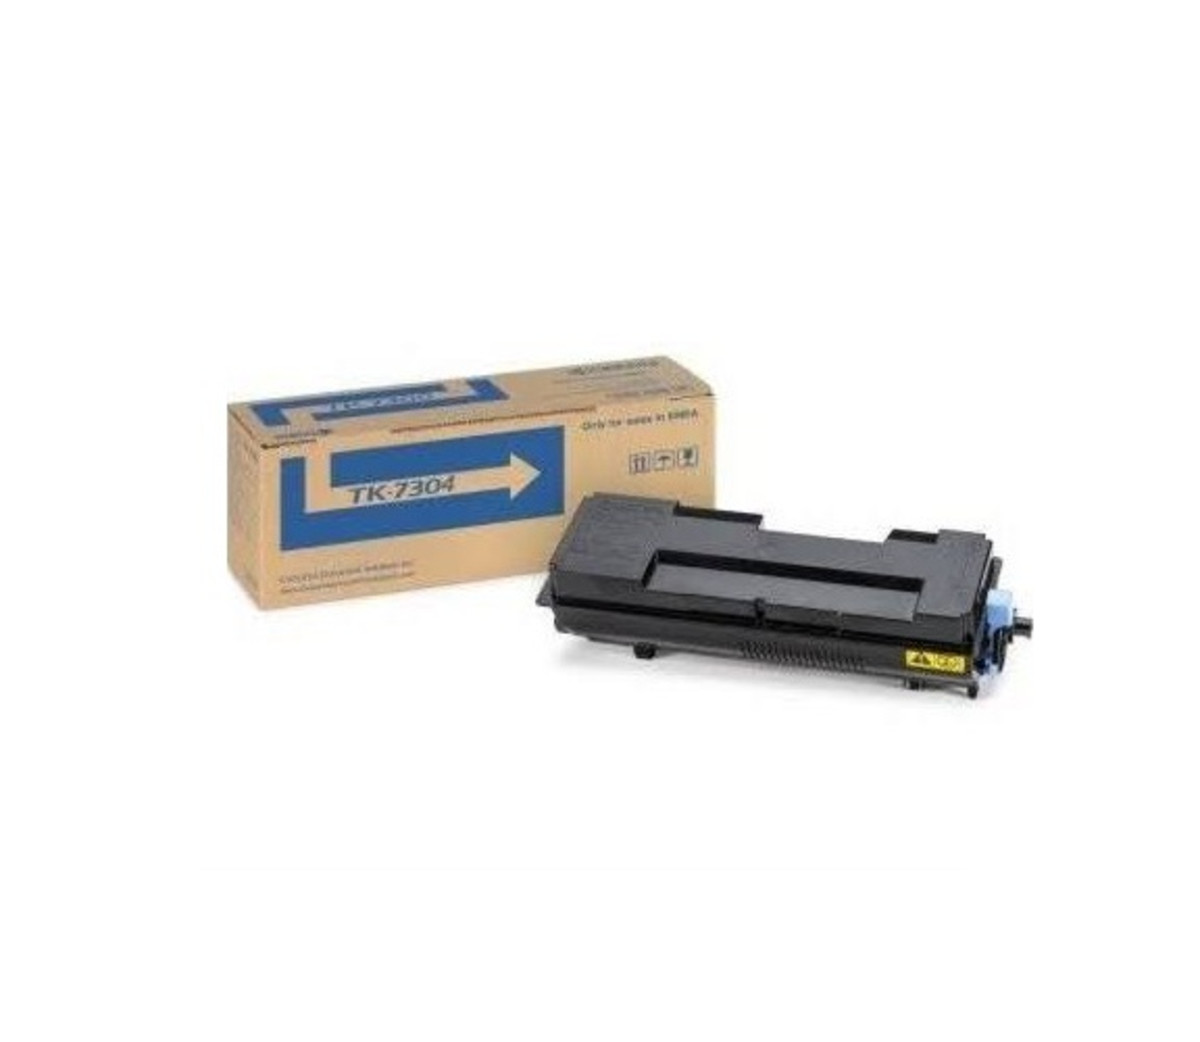 Kyocera TK-7304 Black Toner Cartridge